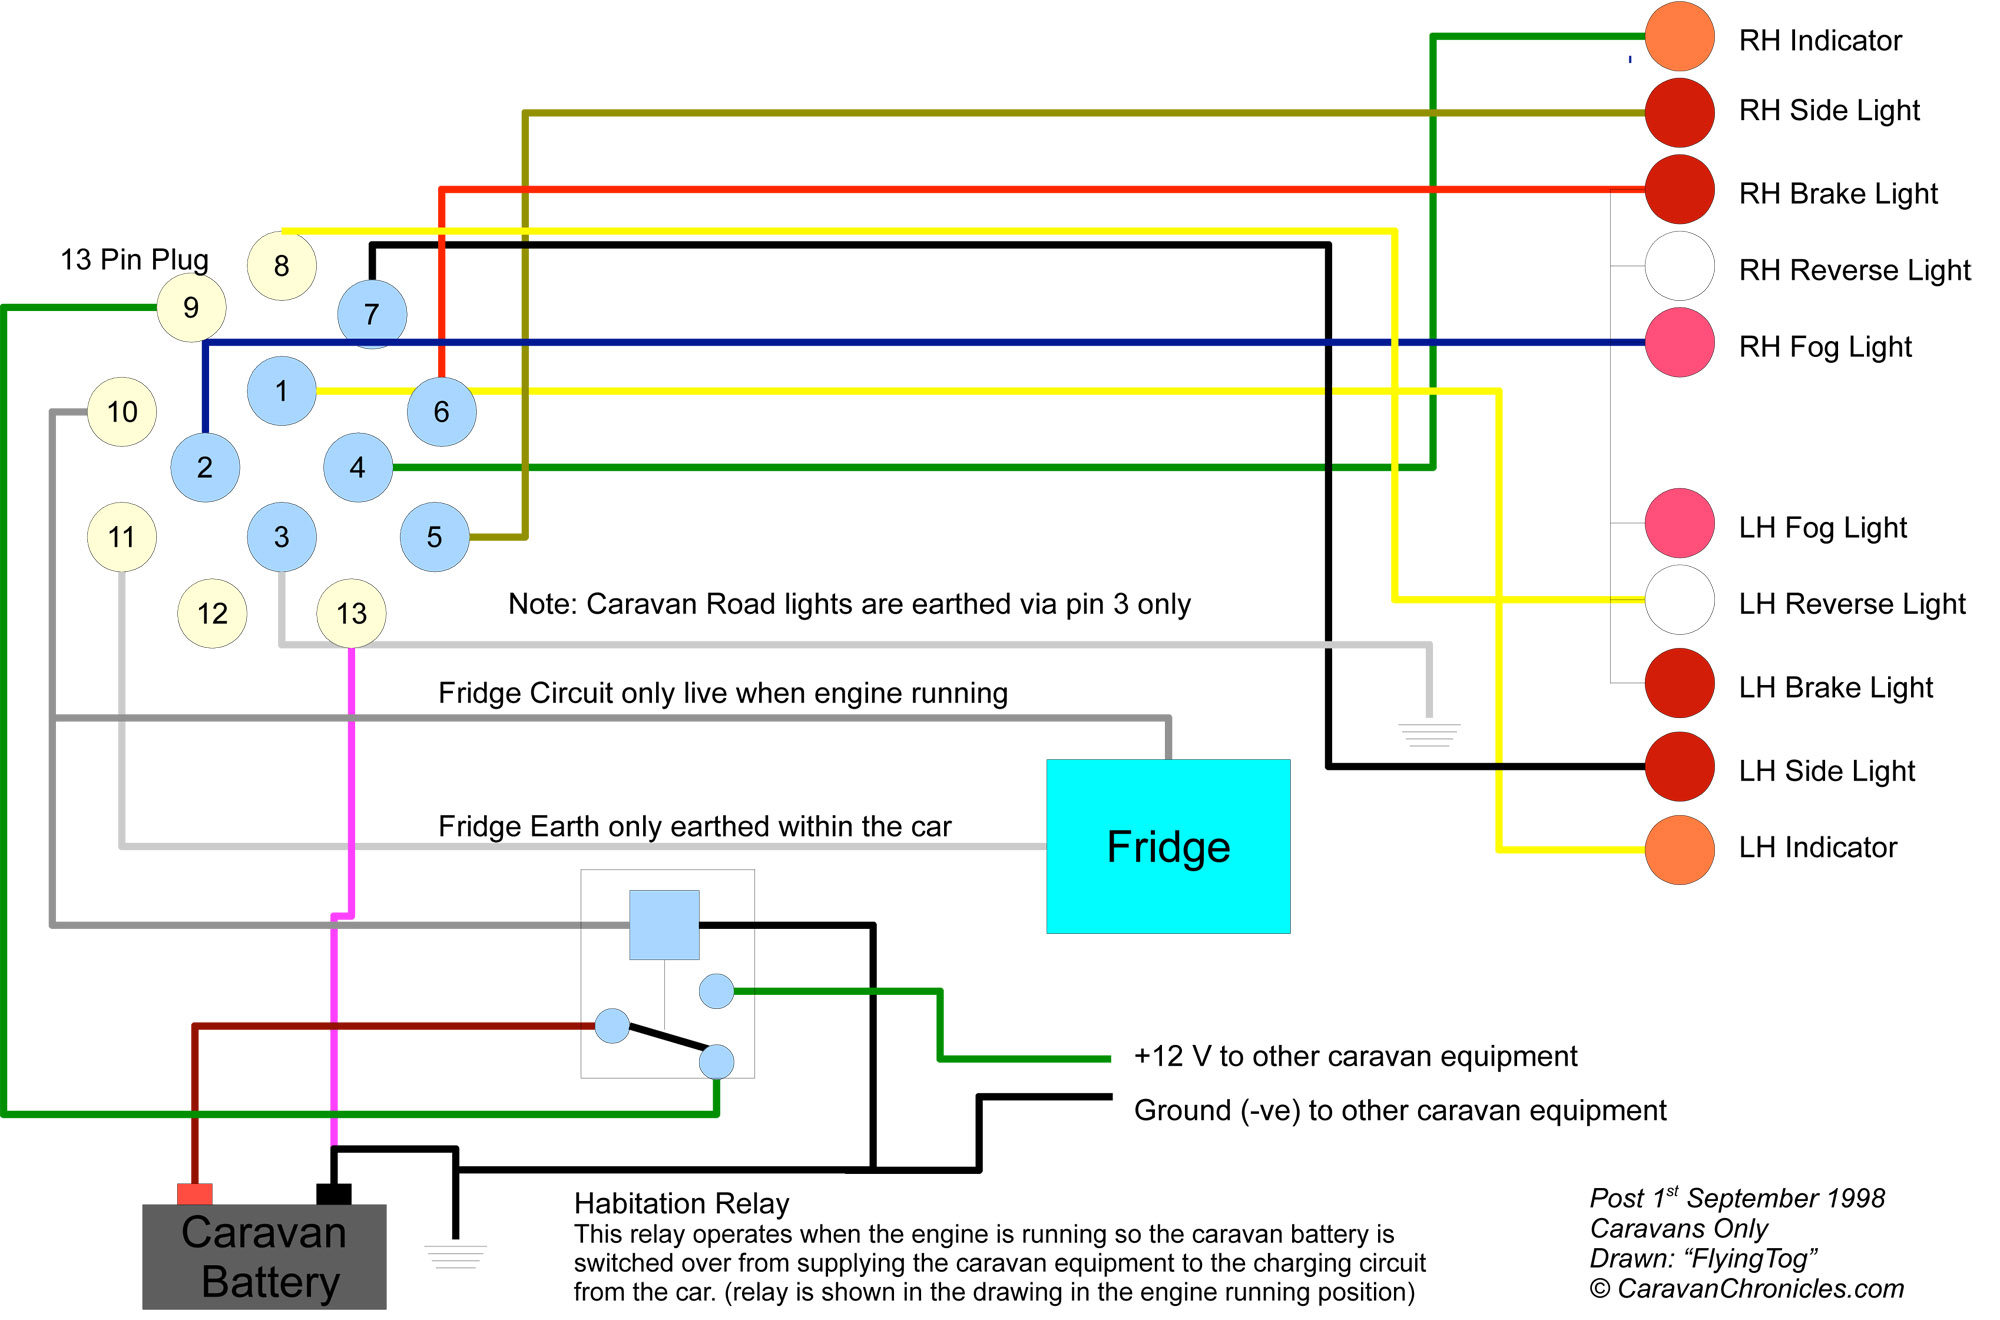 Citroen C1 Wiring Diagram Master Blogs C5 Free Understanding The Leisure Battery Charging Circuit Diagrams